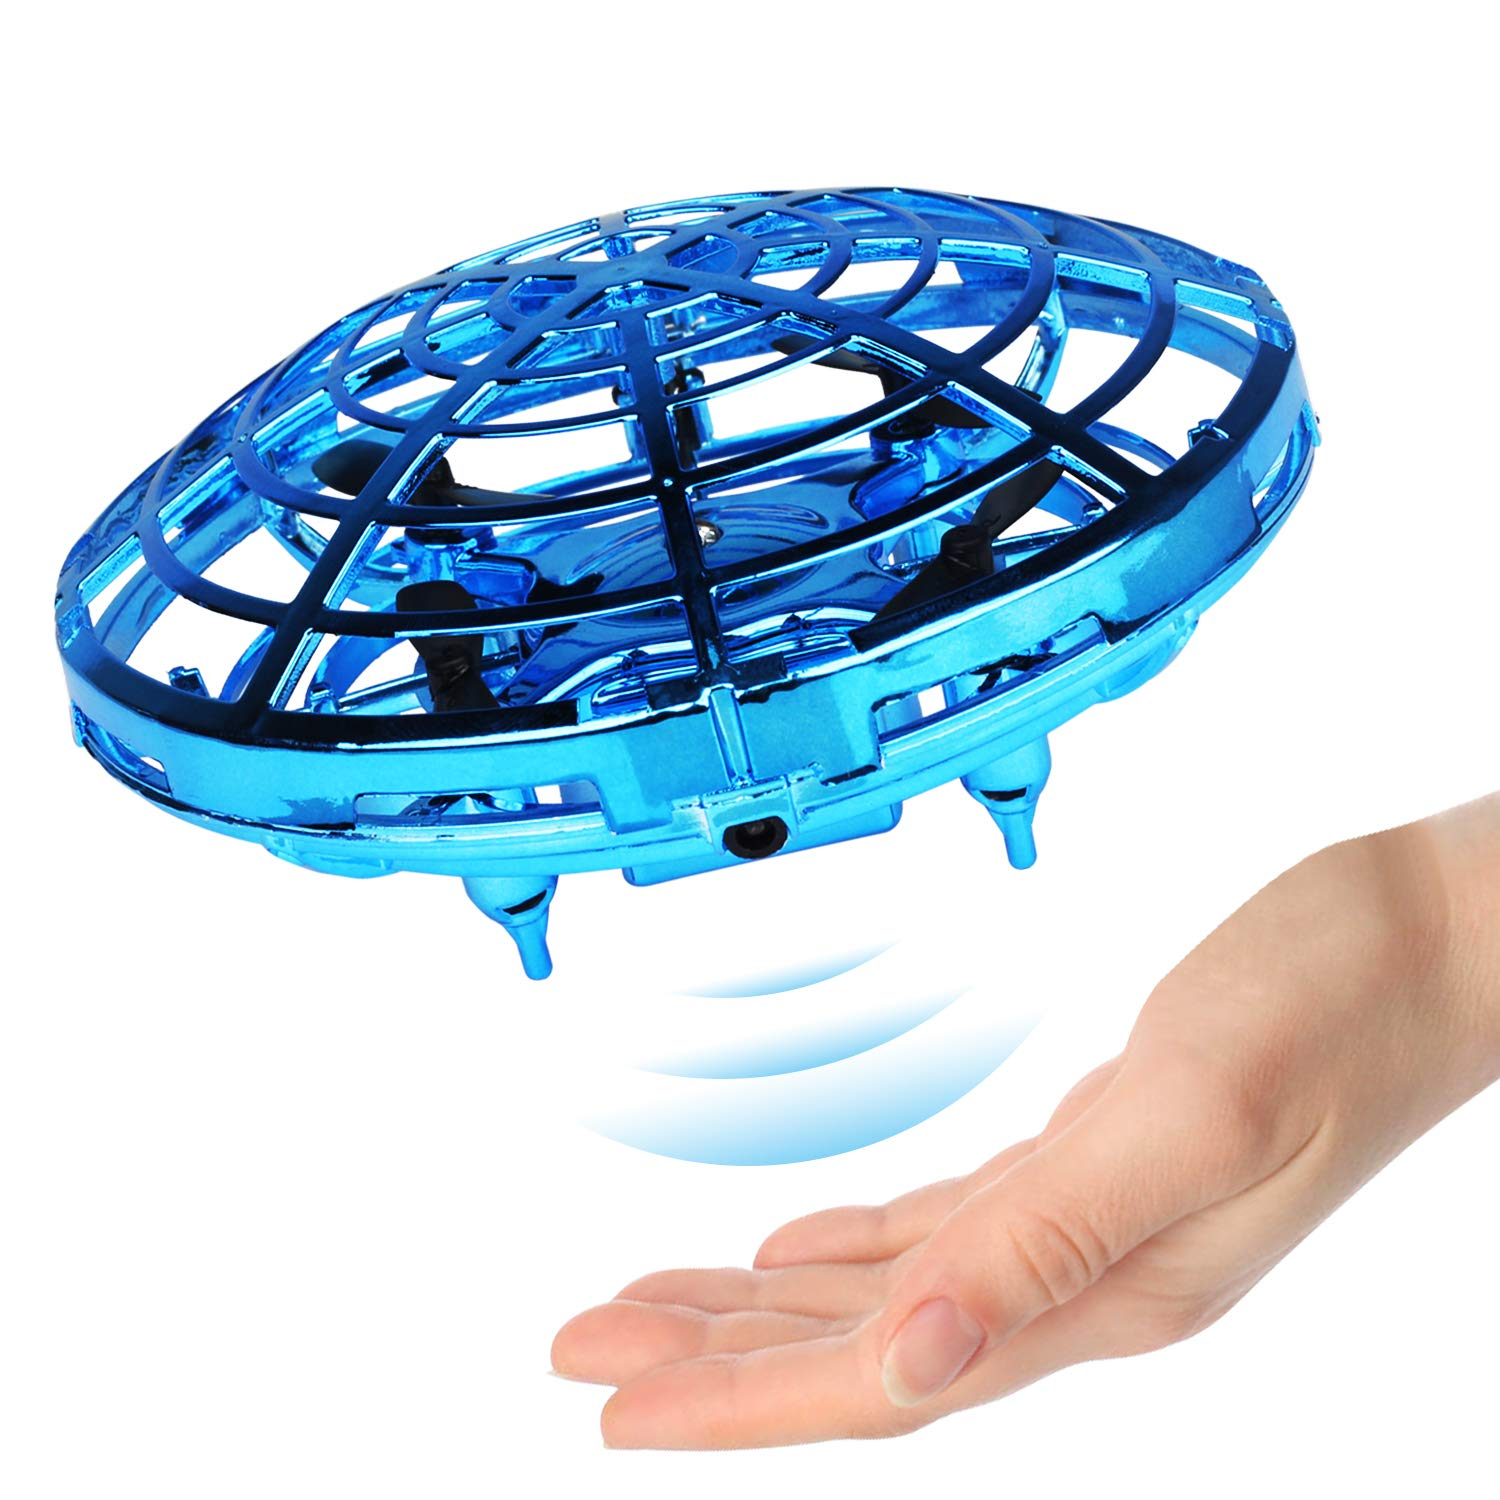 Ganowo Flying Toy Hand Controlled Flying Ball Indoor Outdoor Mini Drone Toys with LED Light for Kids Adults Teens by Ganowo